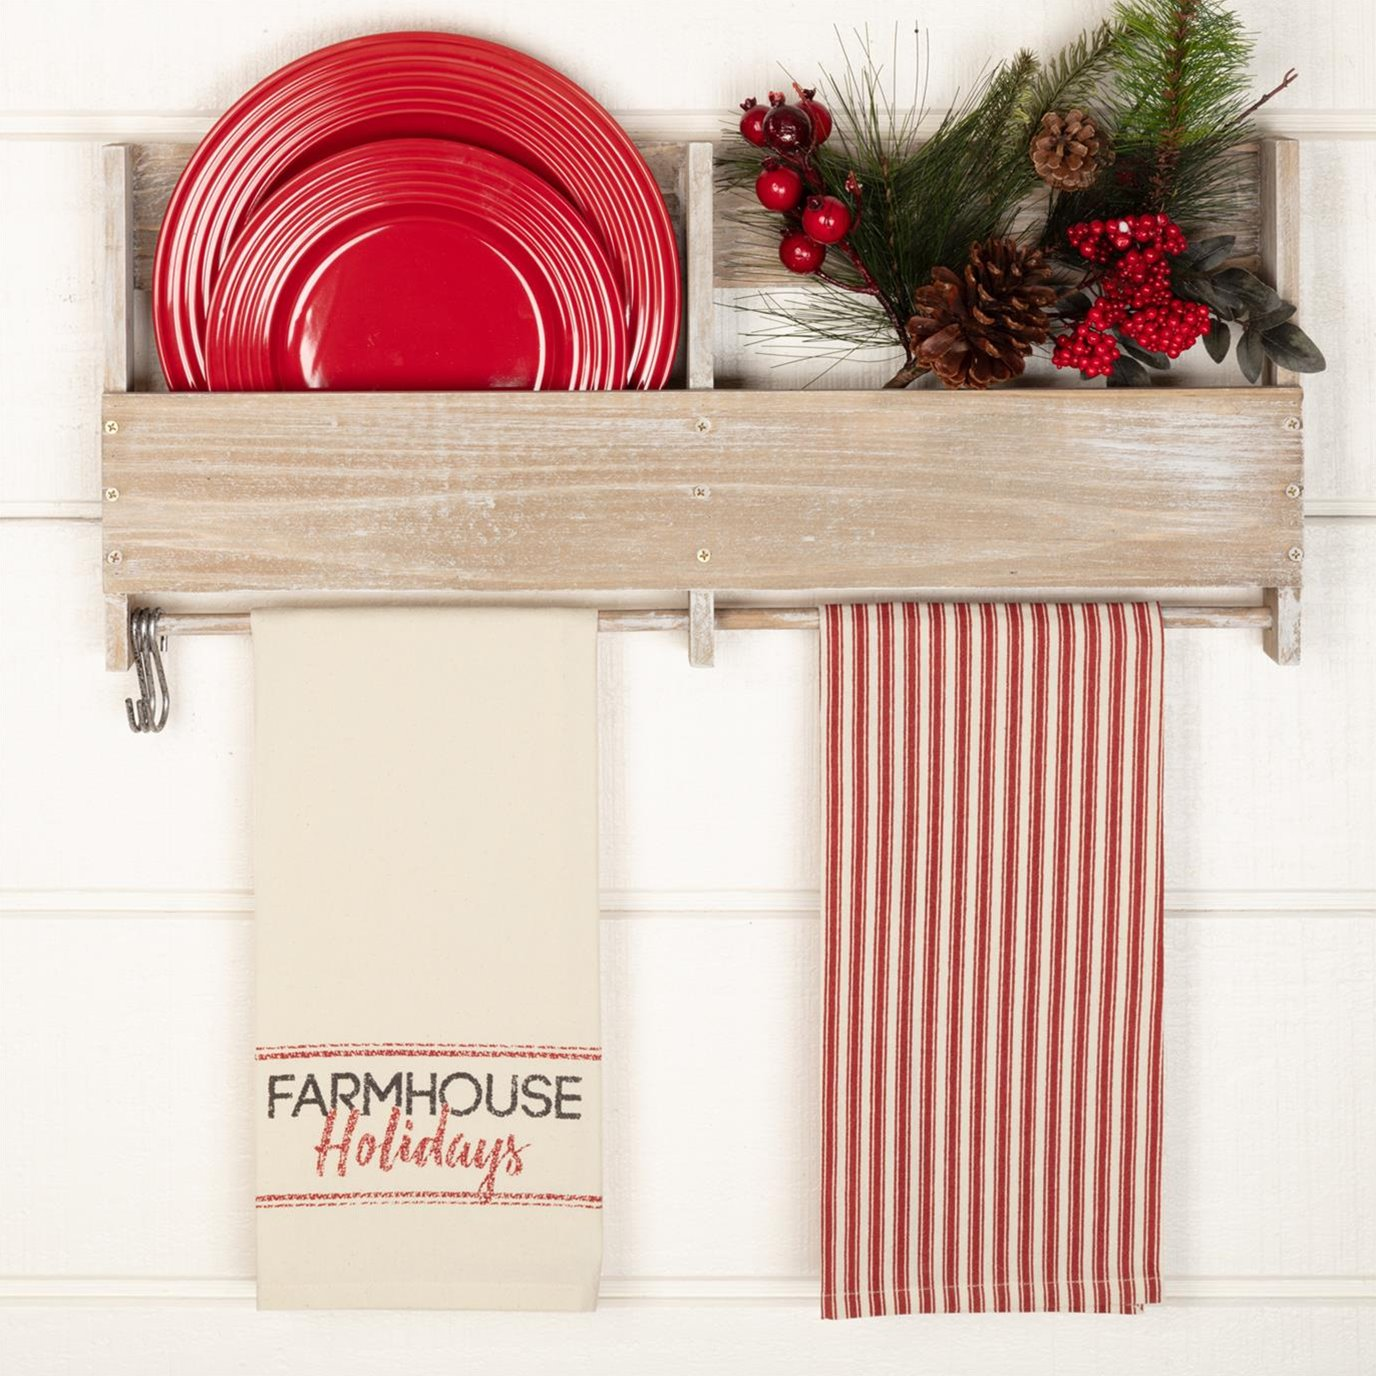 Sawyer Mill Red Farmhouse Holidays Unbleached Natural Muslin Tea Towel Set of 2 19x28